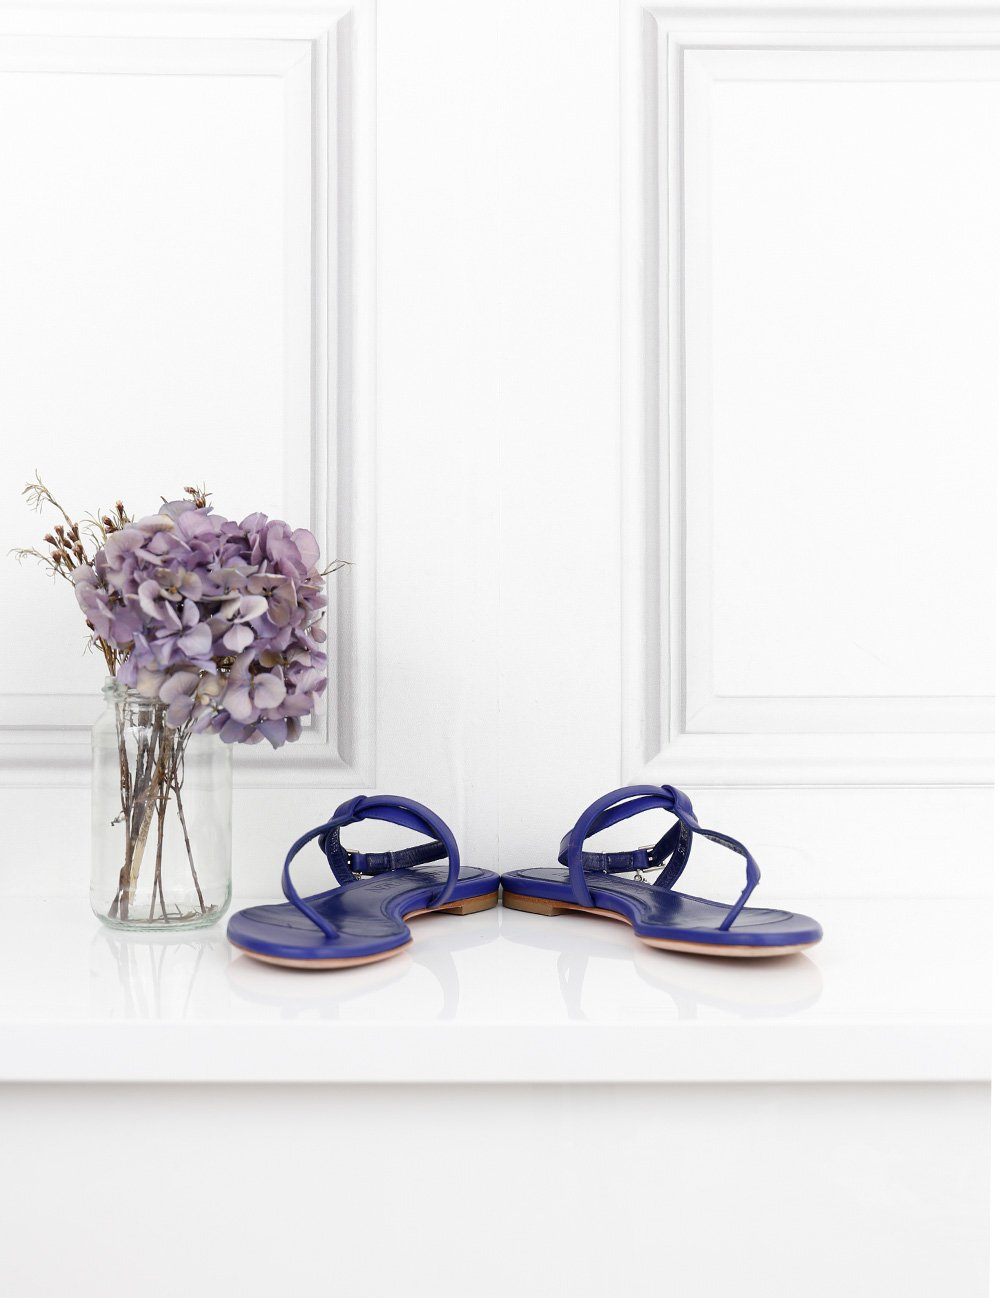 ALEXANDER MCQUEEN SHOES 2UK-35IT-36FR / Blue ALEXANDER MCQUEEN Flat sandals with signature details on the ankle